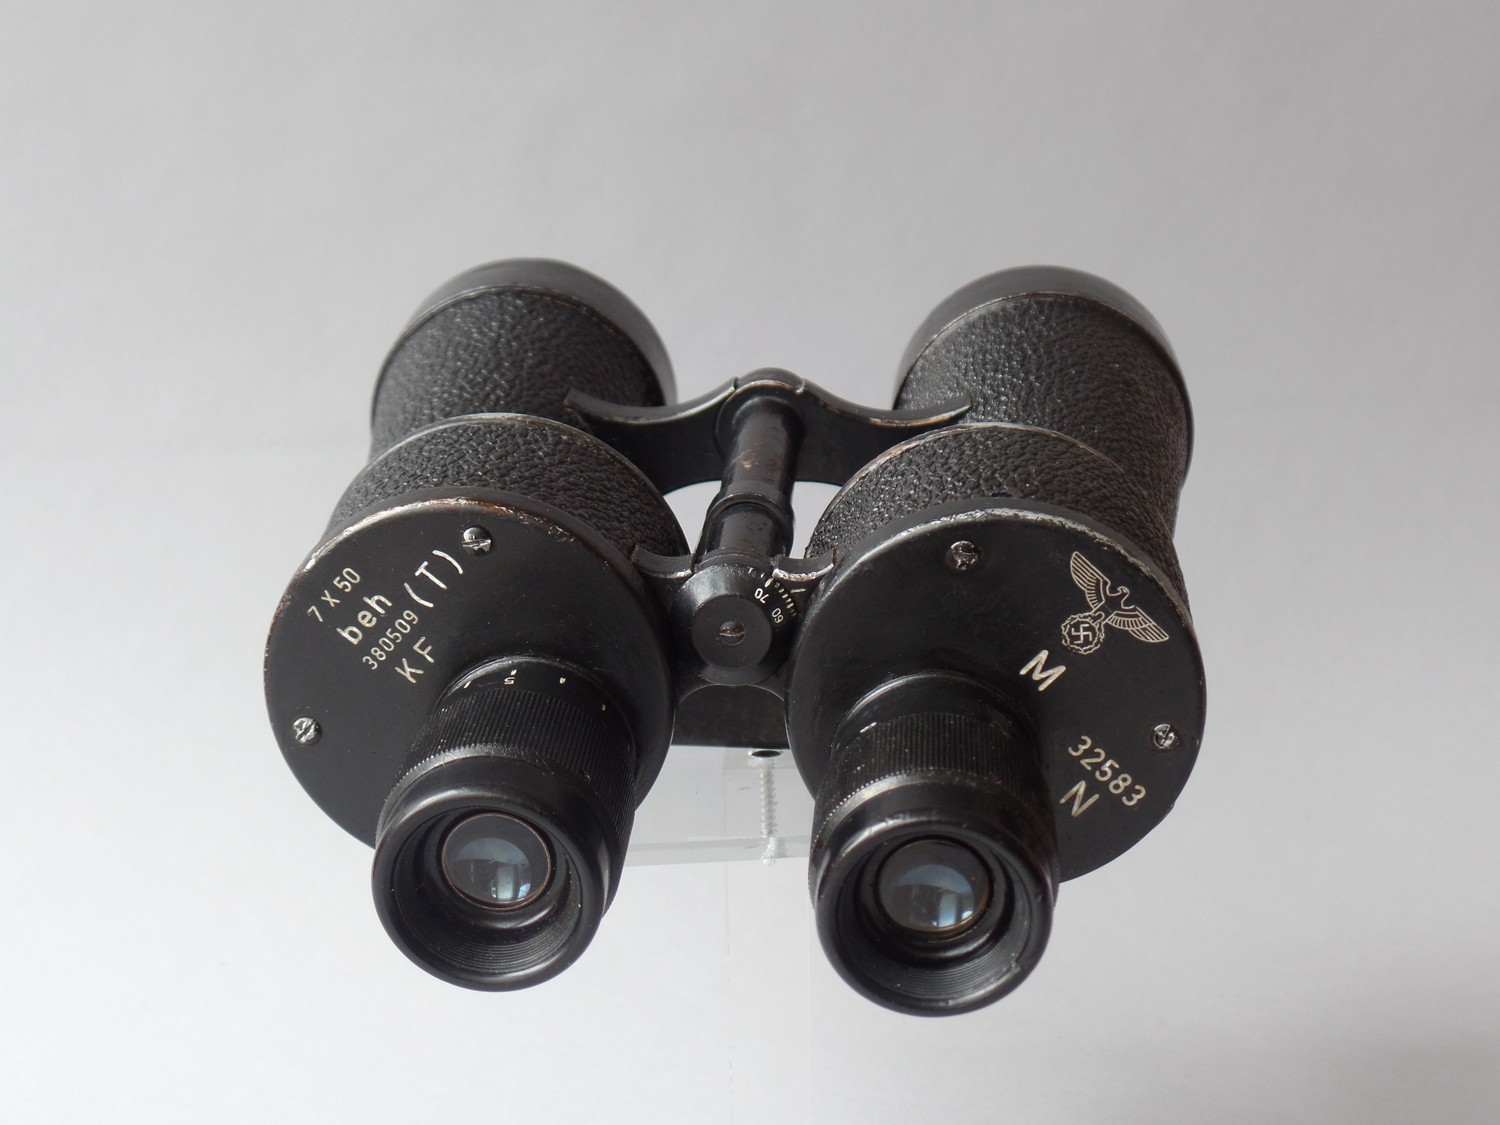 KRIEGSMARINE BINOCULARS E. LEITZ WETZLAR WW11- CLEANED & SERVICED